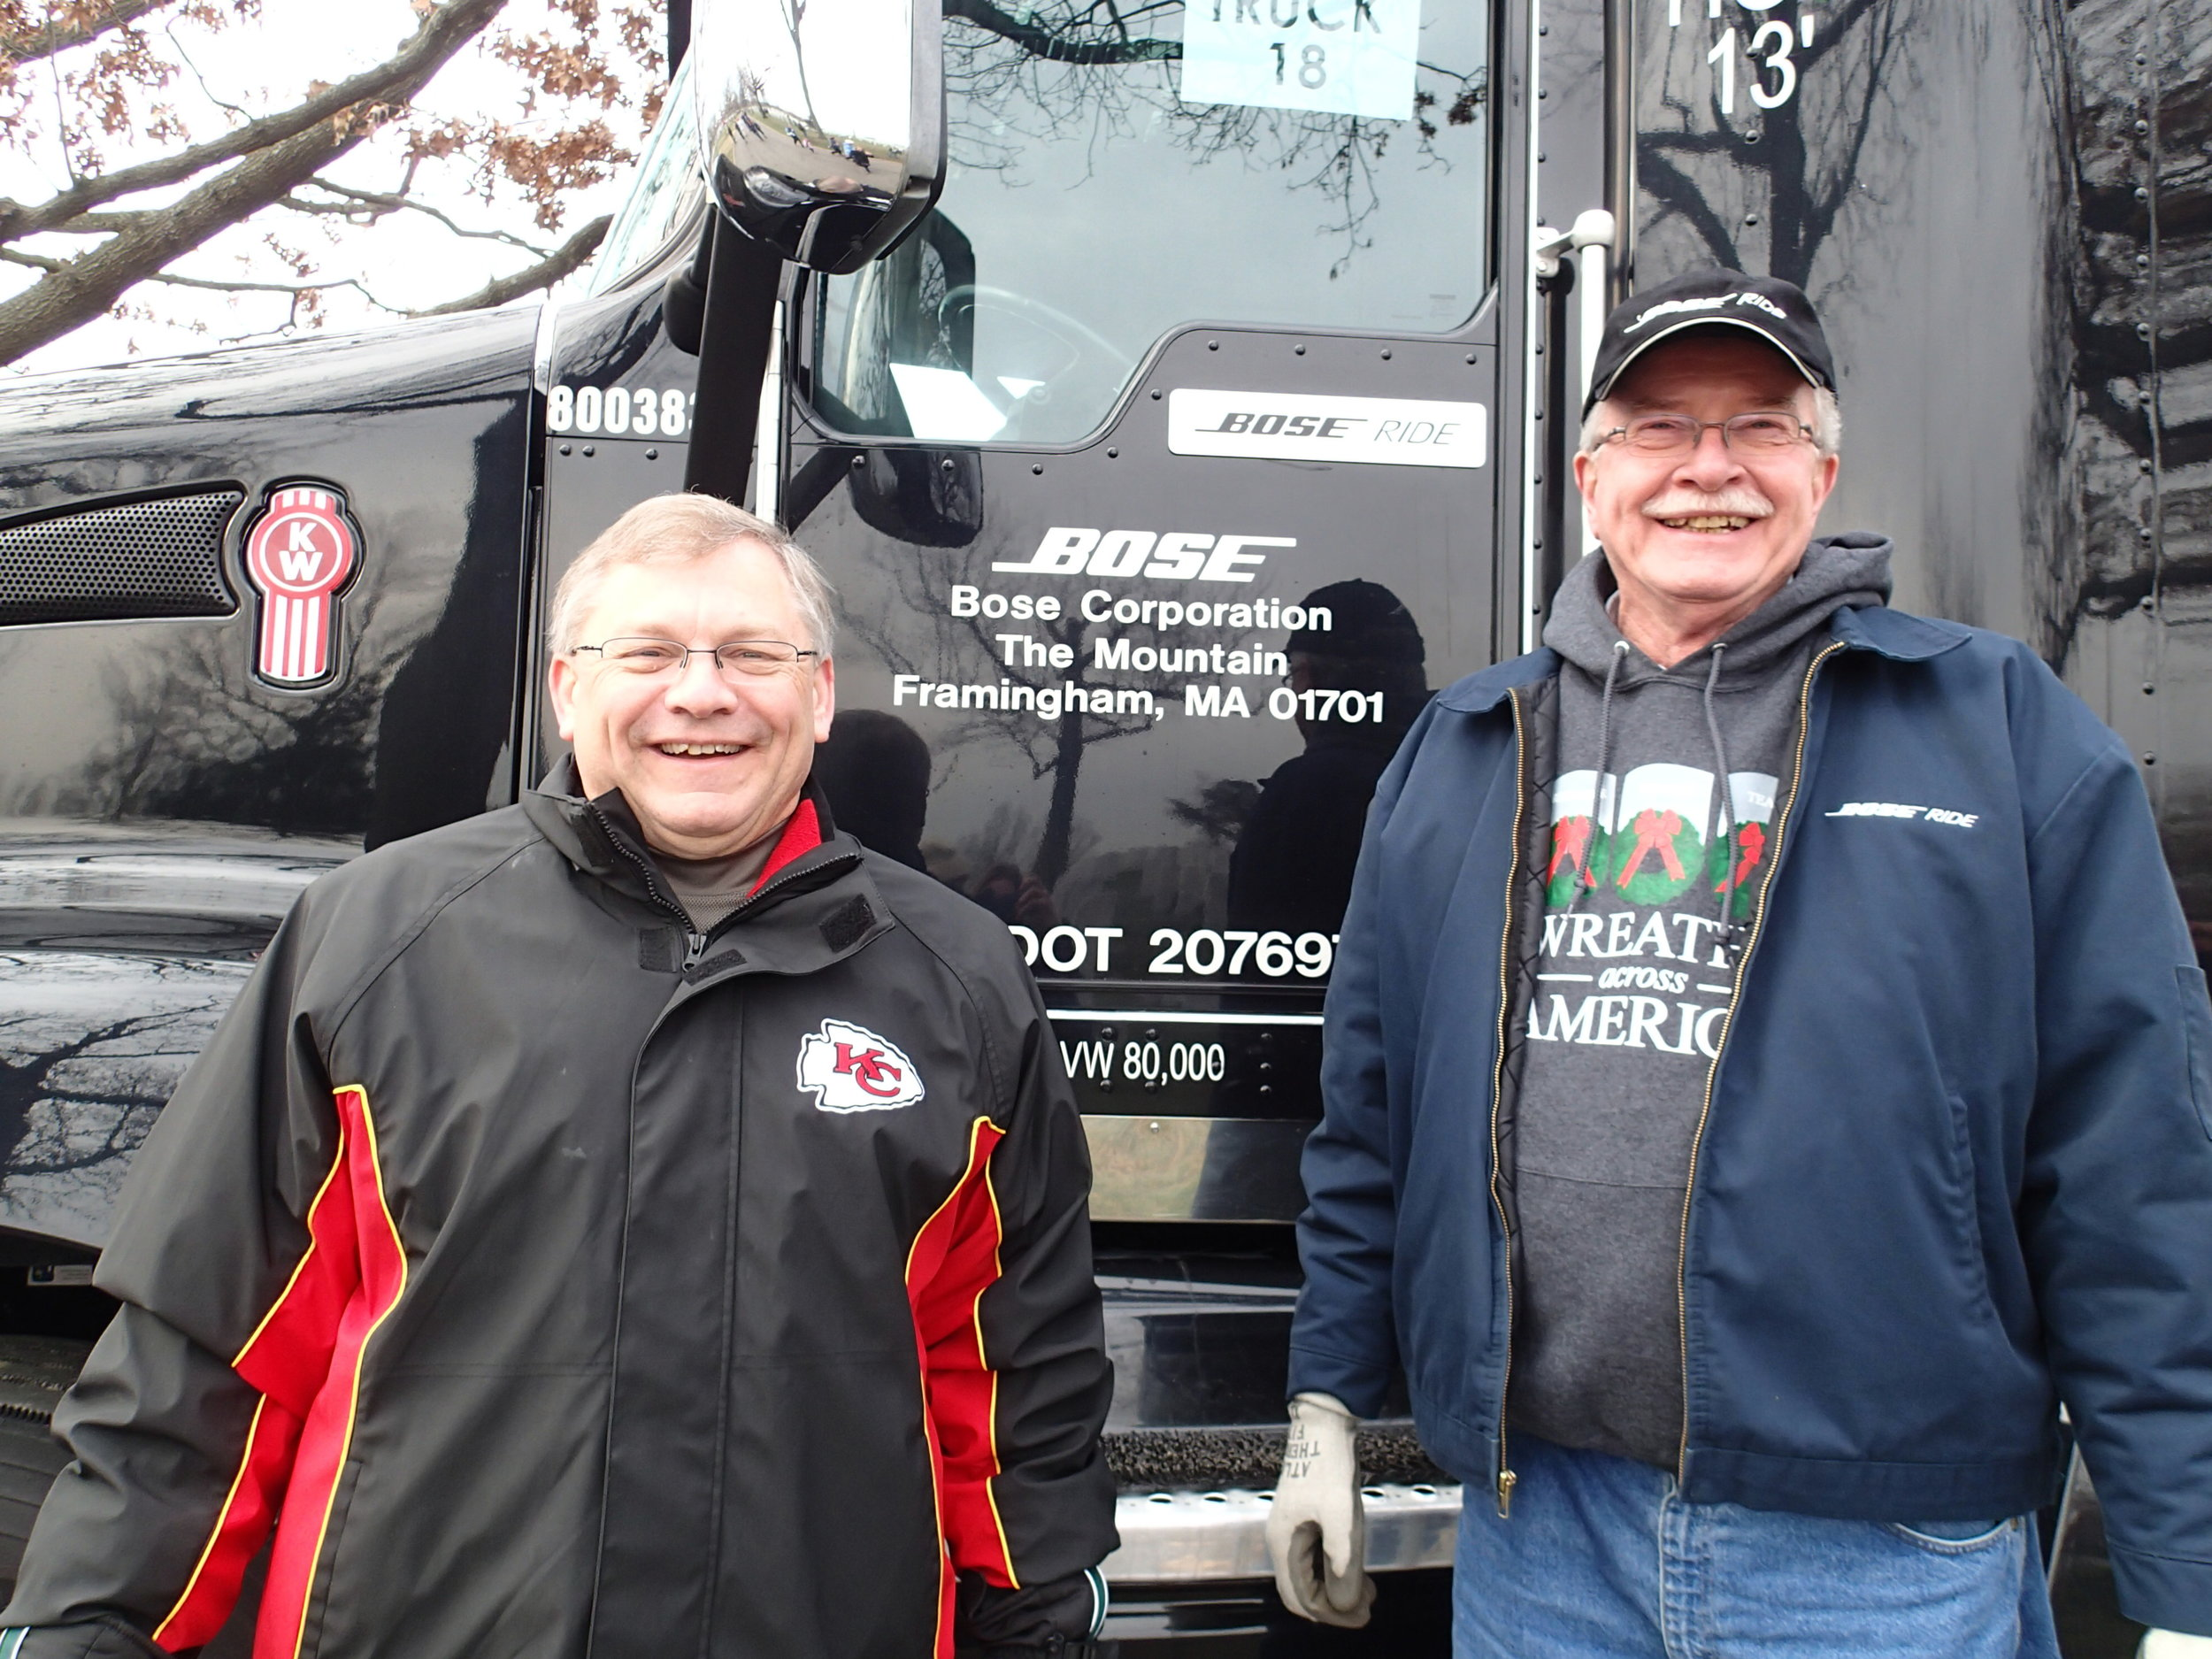 Al Anderson (left) and Bose Ride driver Gary Hussey